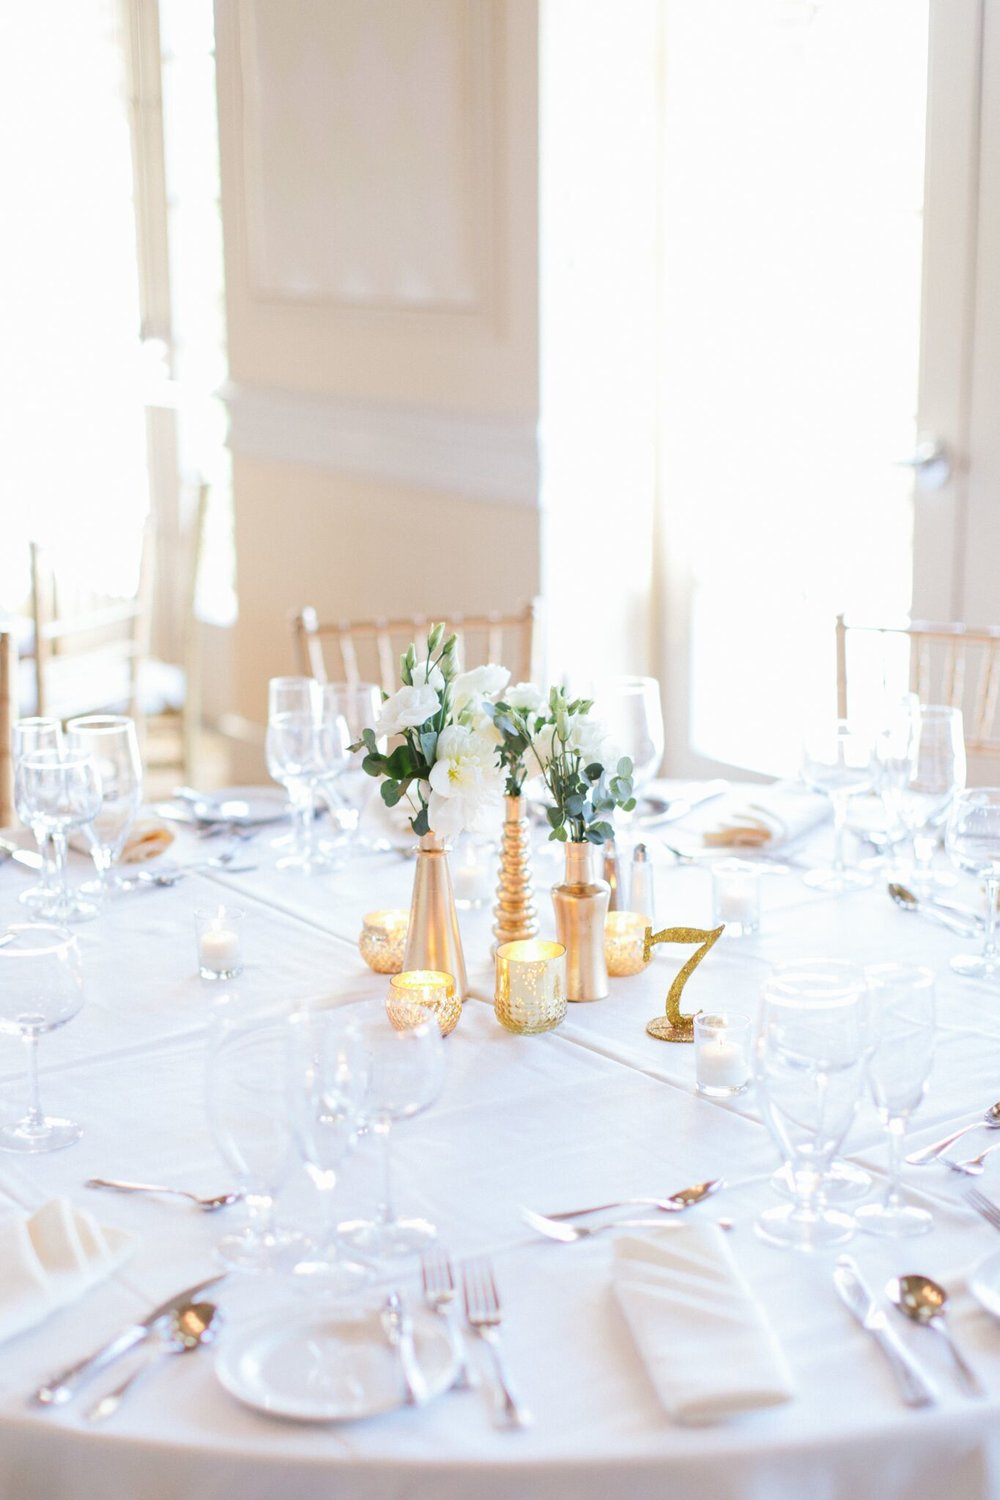 Tablescape Details